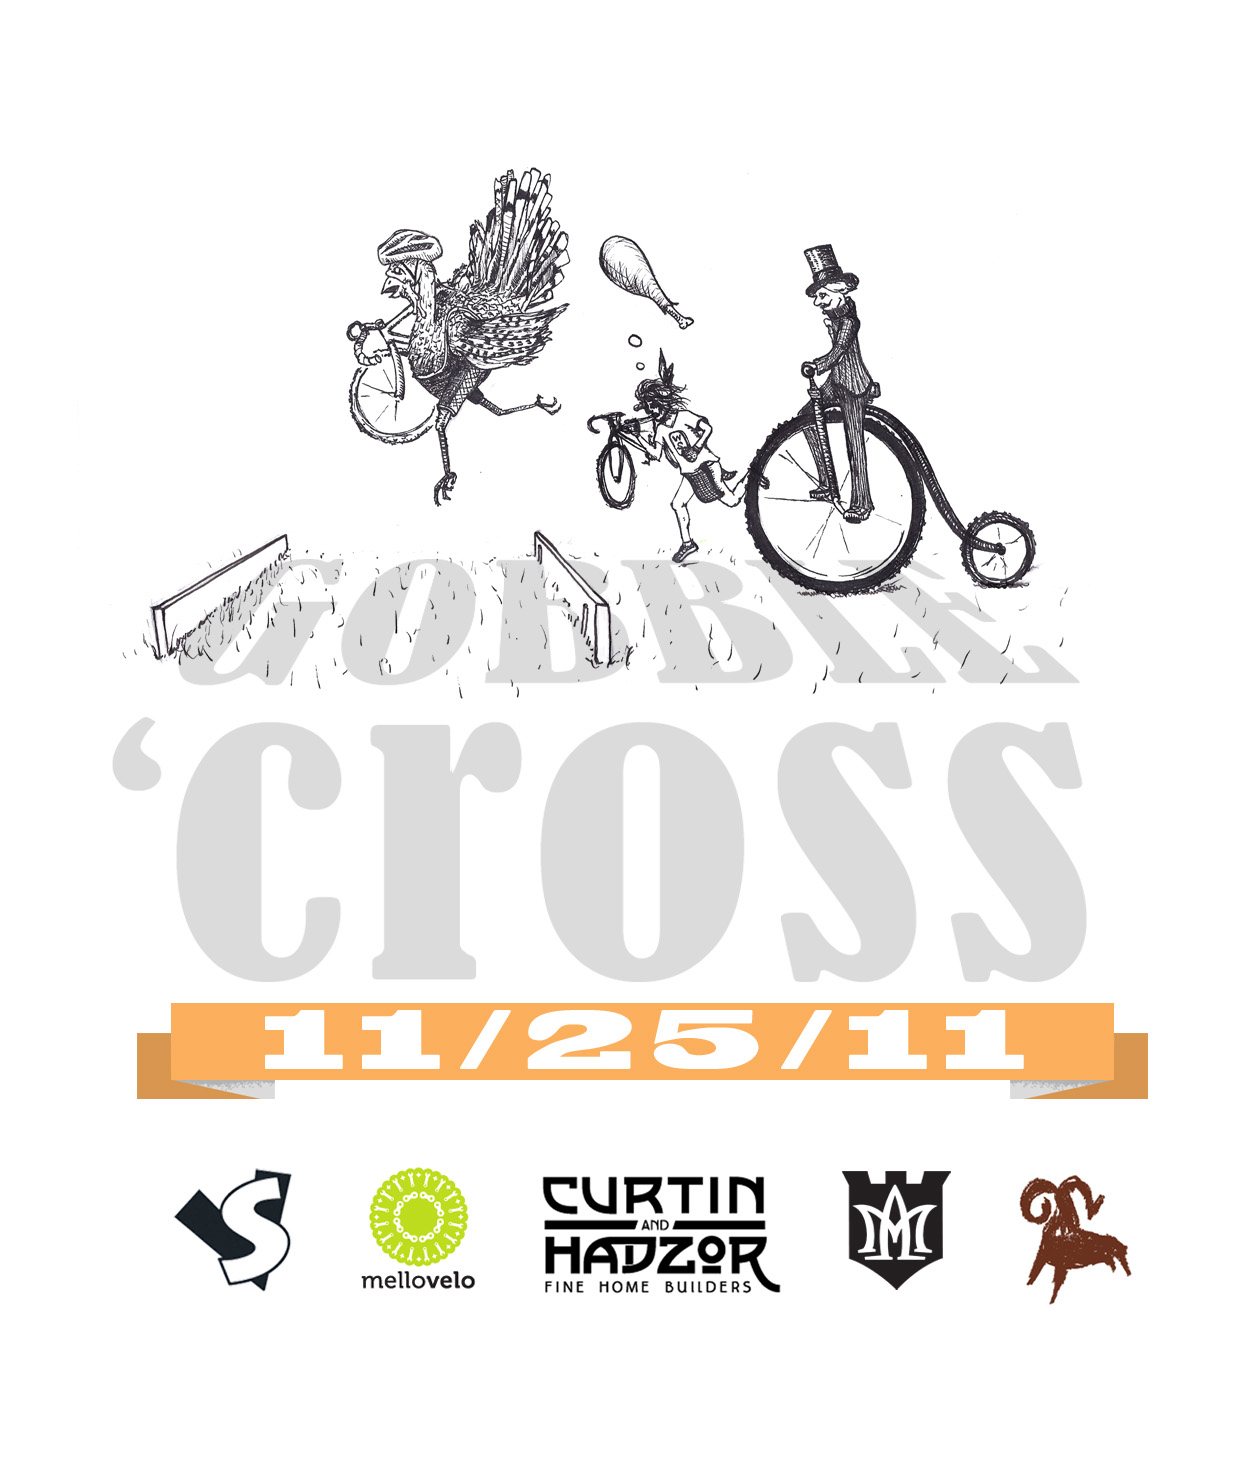 a citizens cyclocross race hosted by Curtin and Hadzor Fine Home Builders